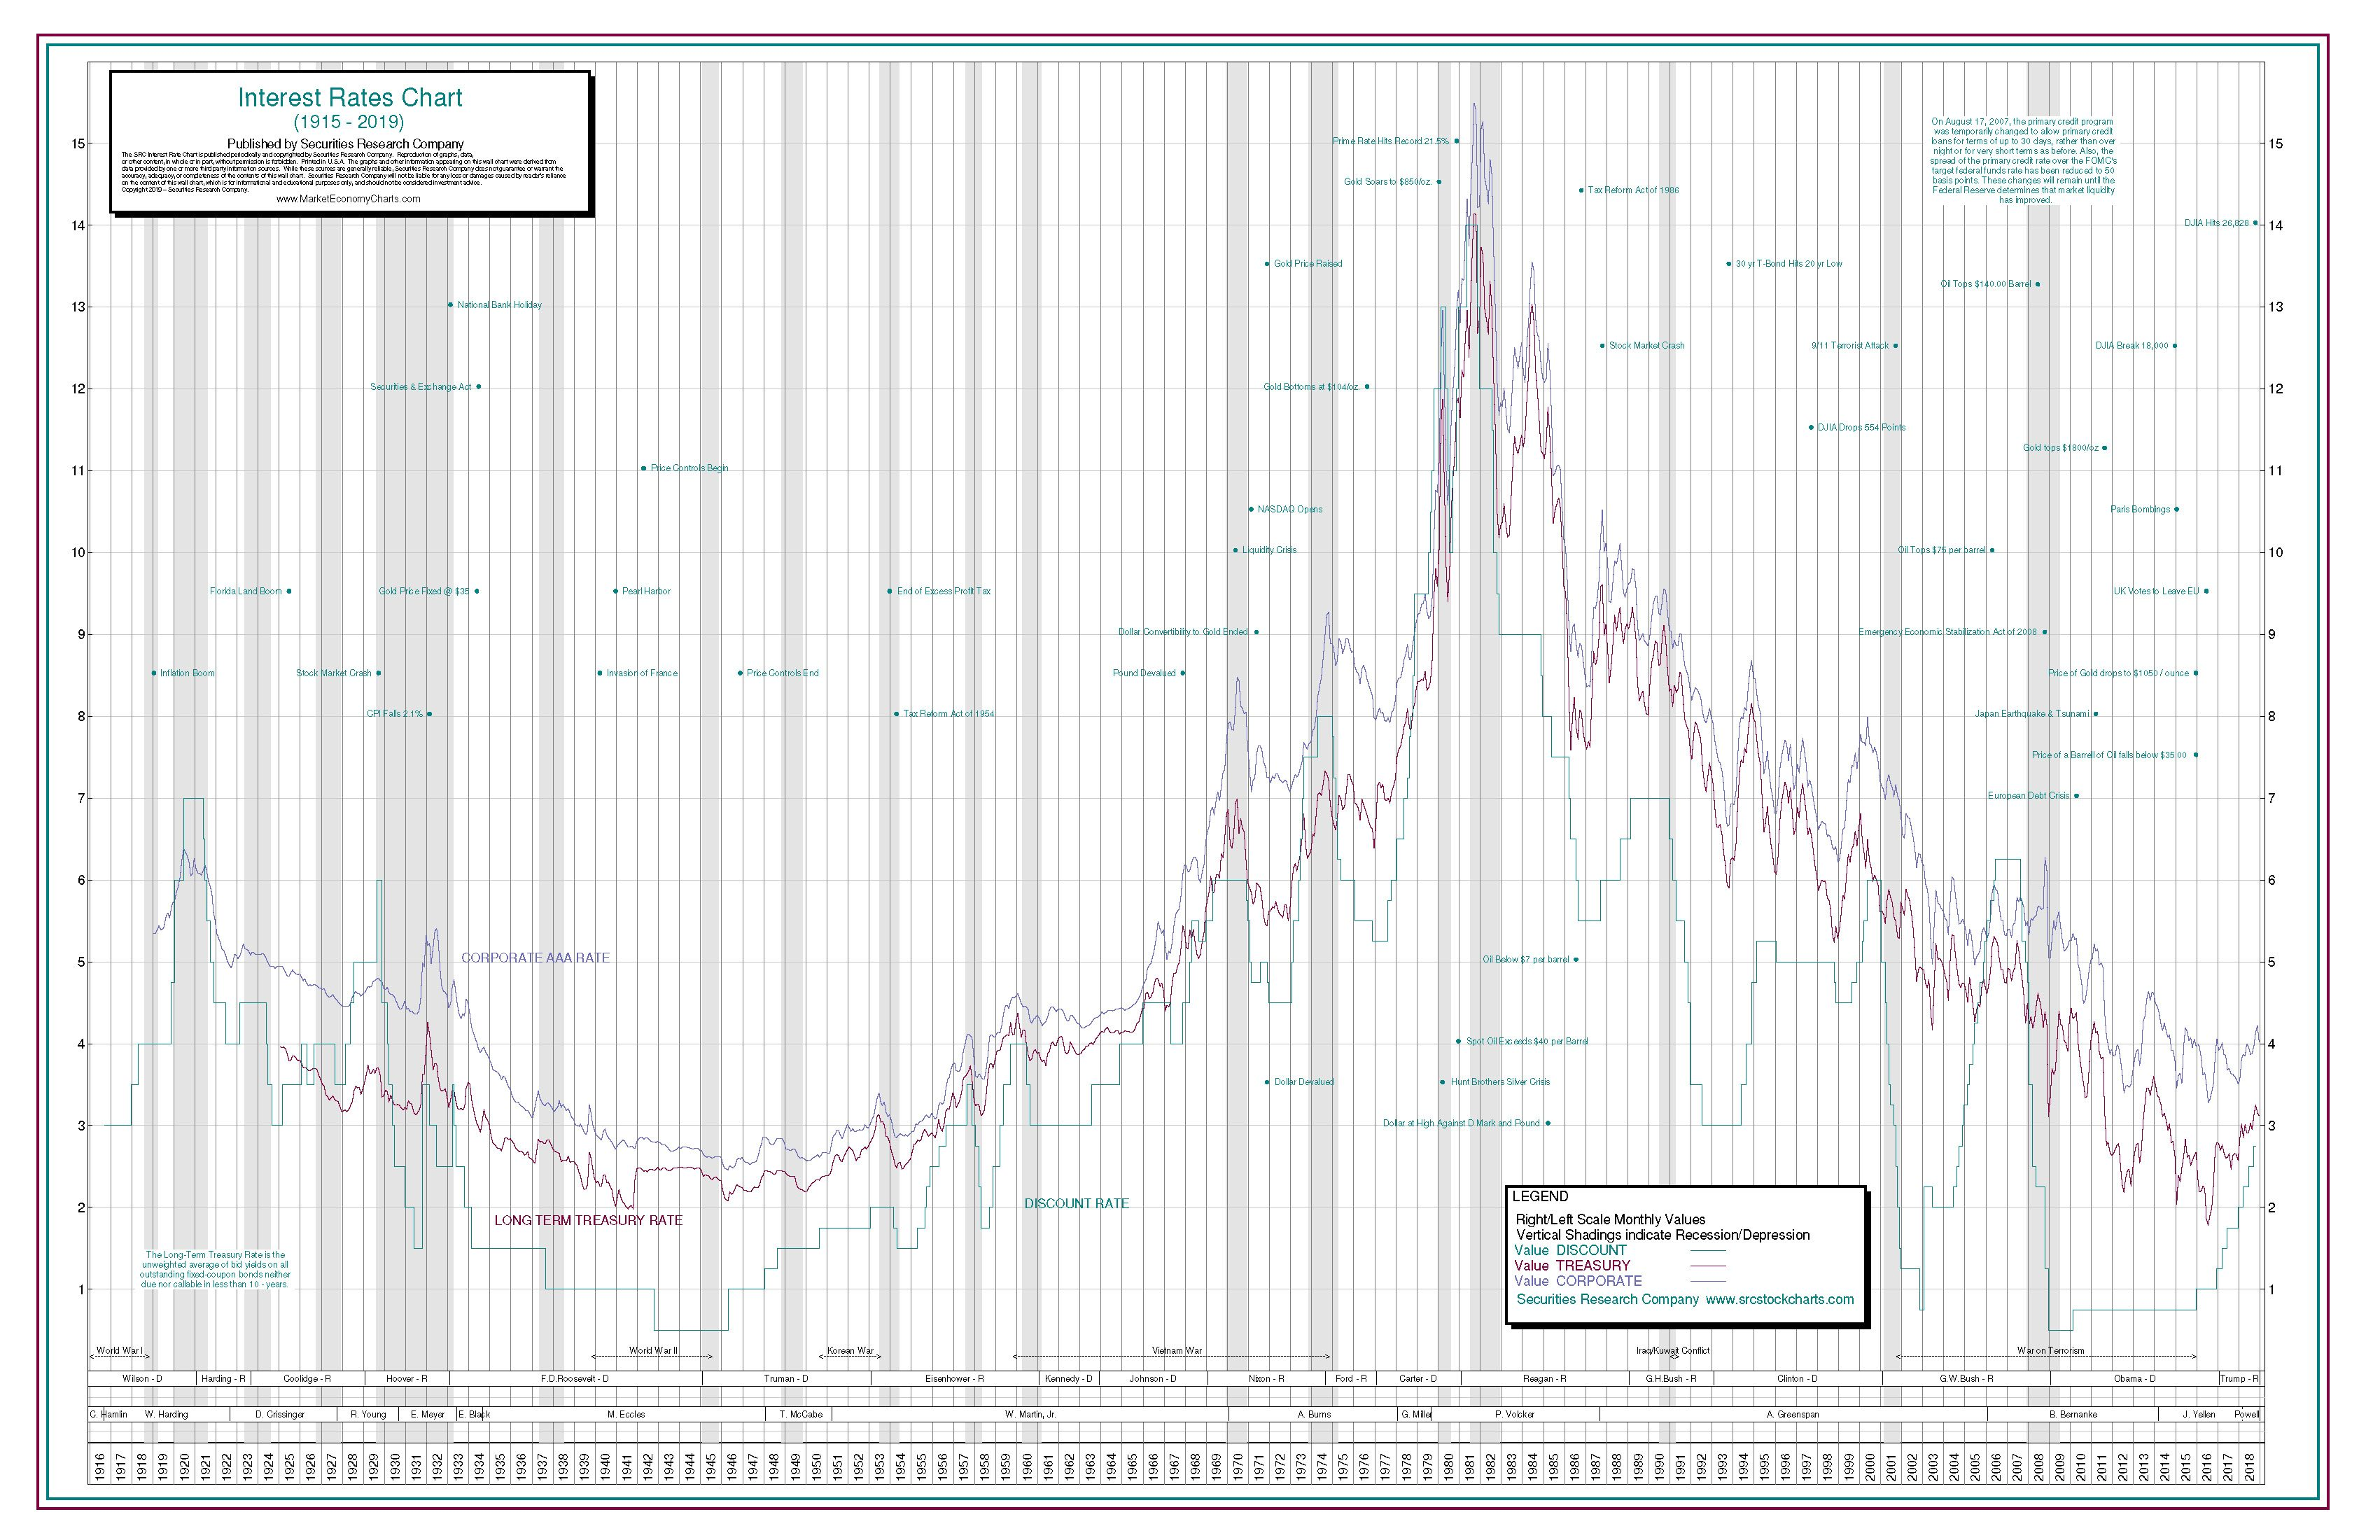 Historical Interest Rate Chart